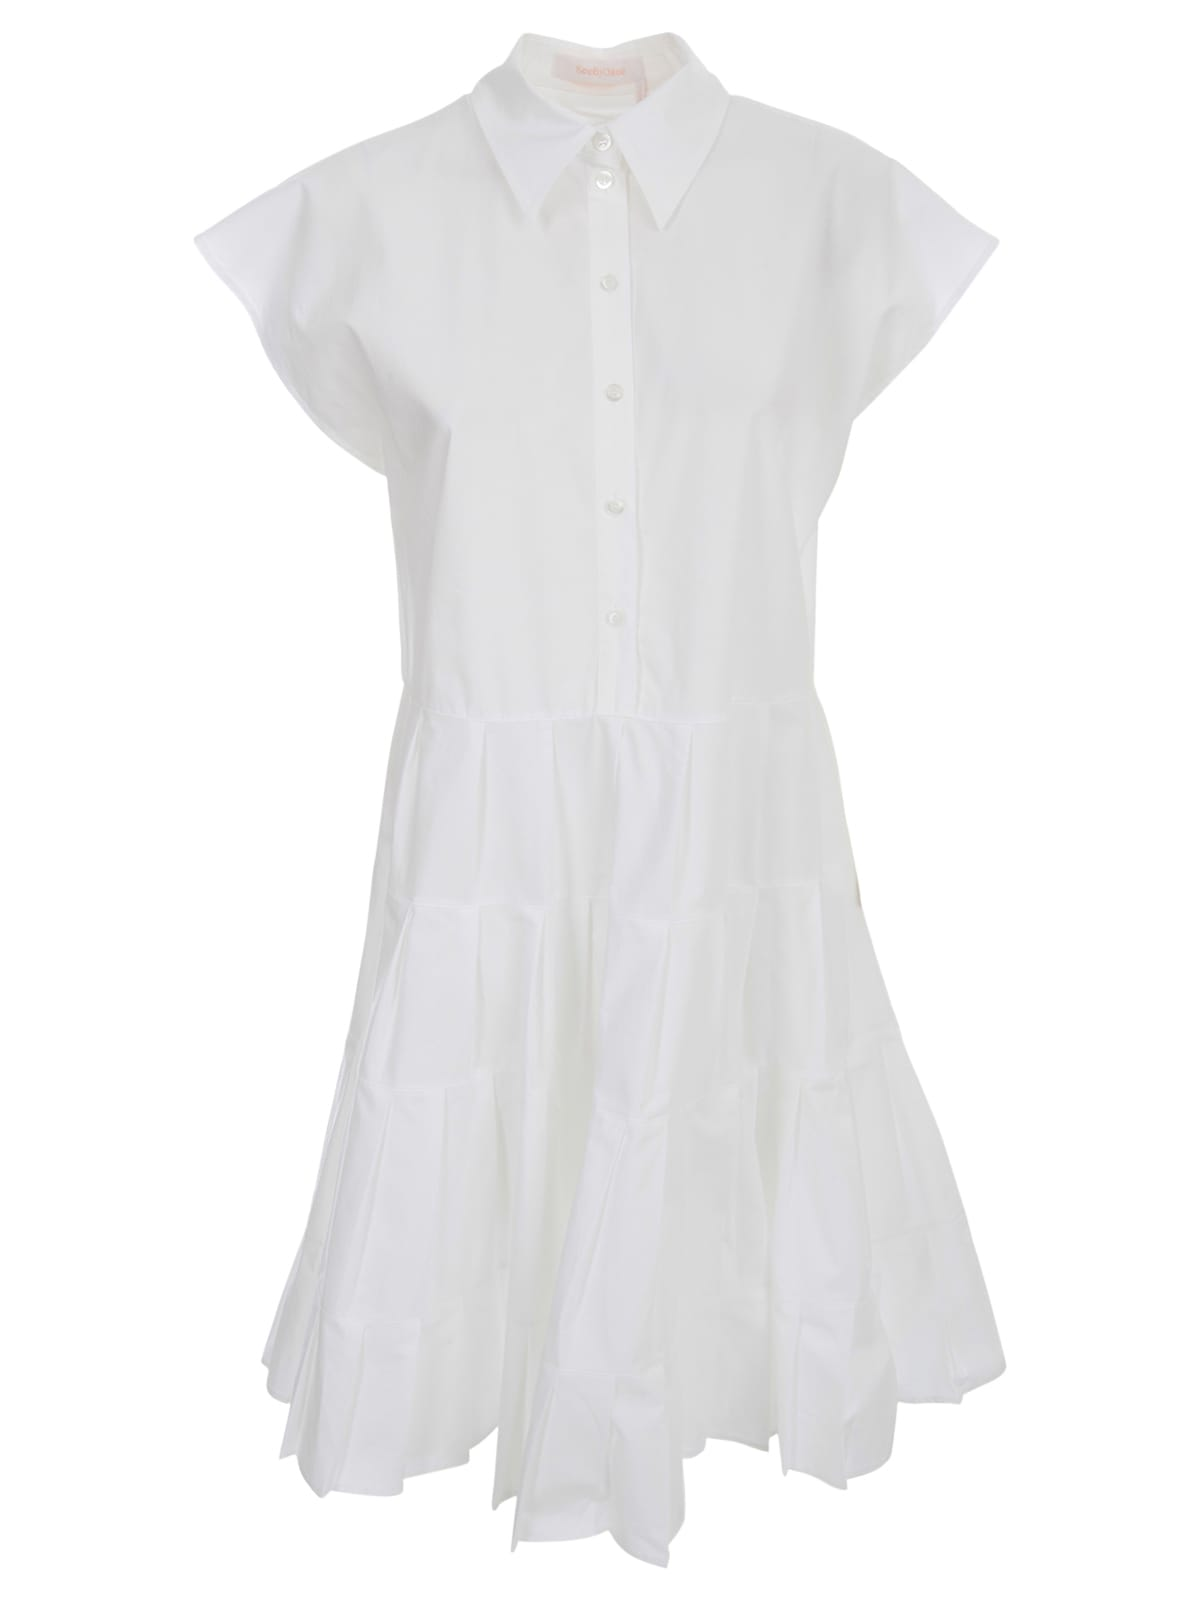 Buy See by Chloé Dress S/s Shirt Collar online, shop See by Chloé with free shipping